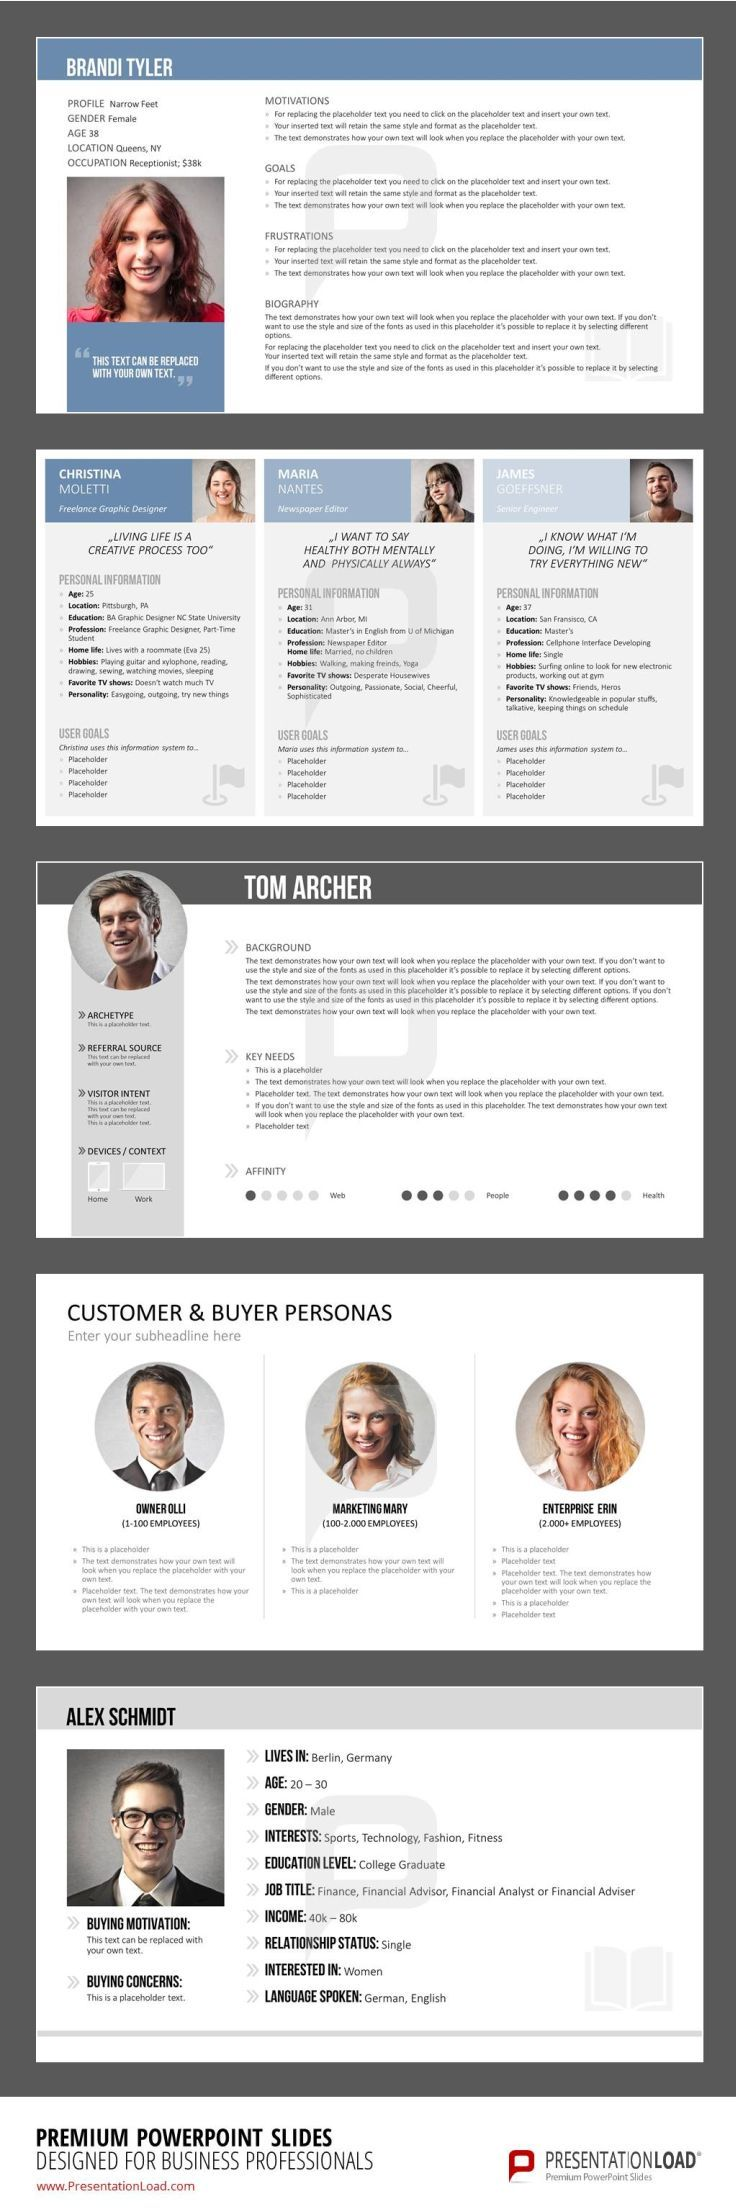 buyer persona templates for powerpoint will help you gather the, Presentation templates